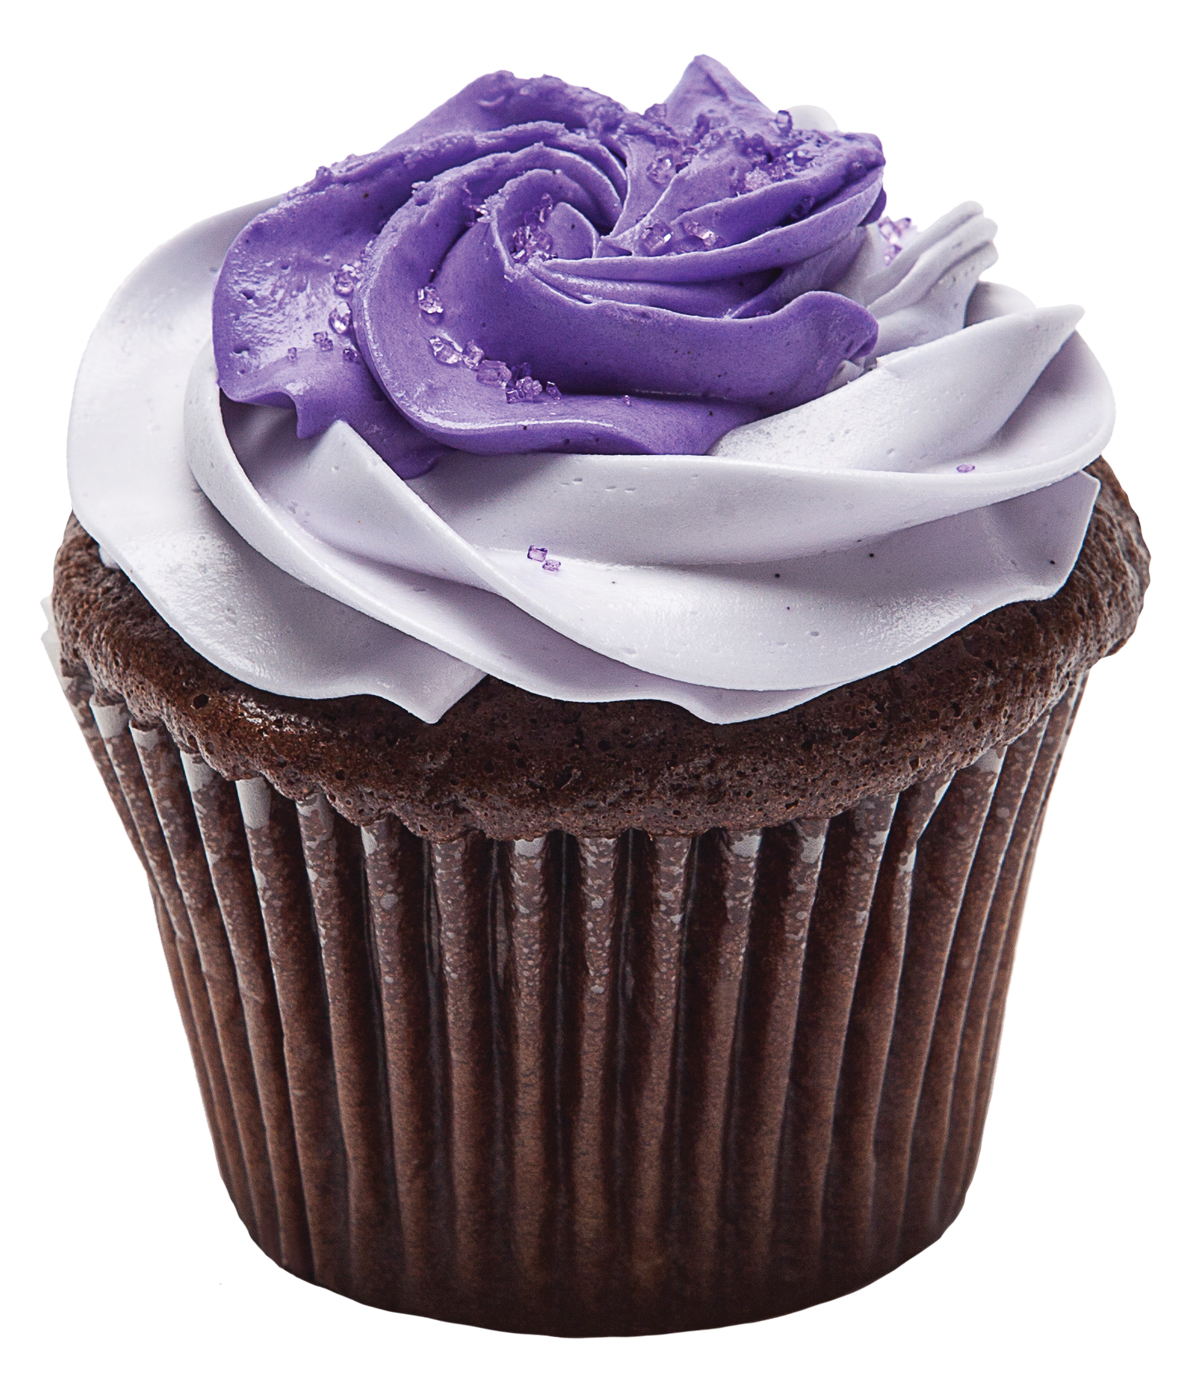 FOR-WEB_coolhunters-3-cupcake